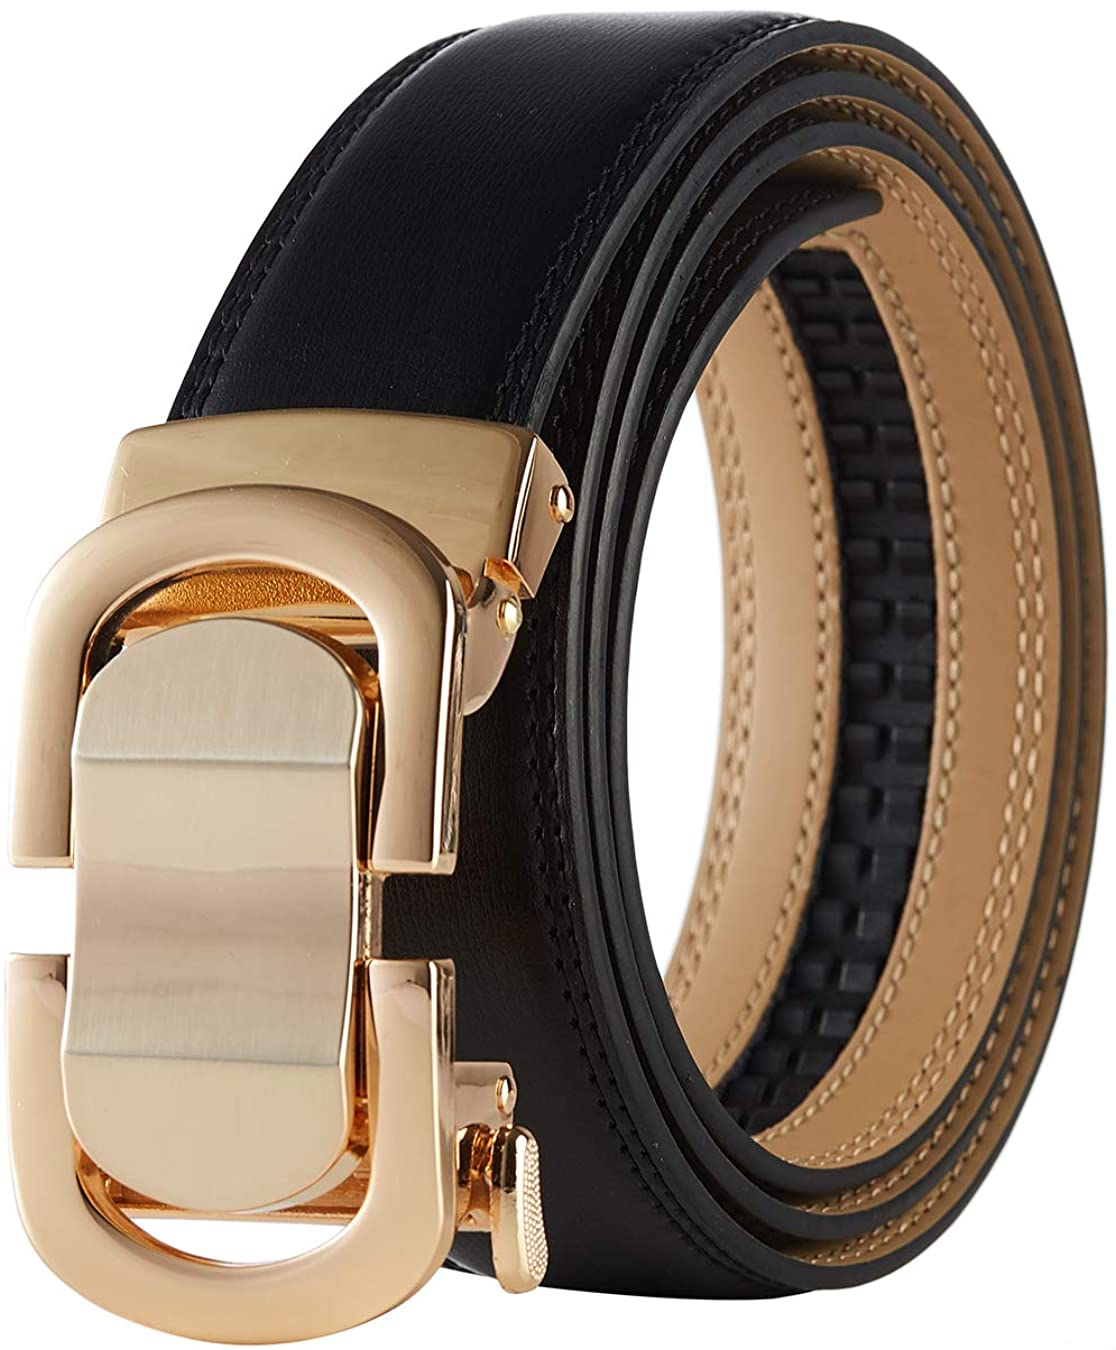 Tonywell Men's Leather Designer Belt with Fashion Comfort Click Buckle Exact Fit